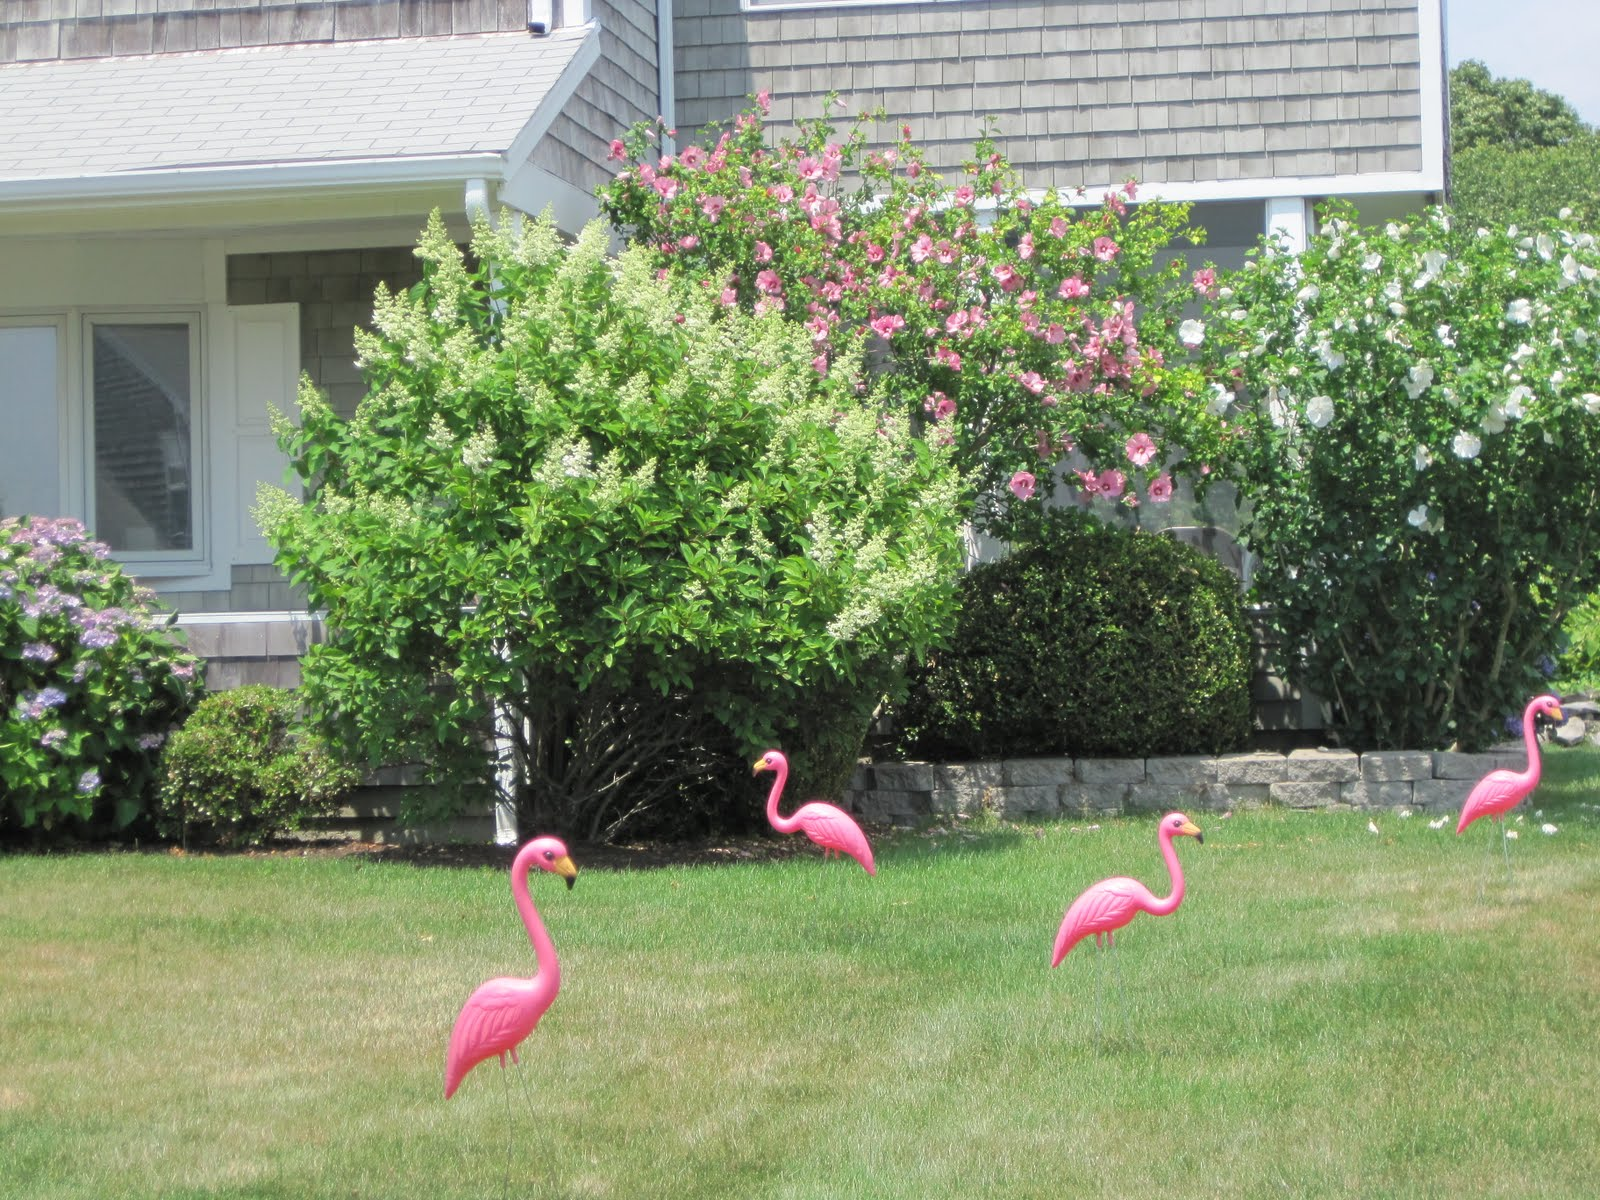 Gardening and Gardens: Pink Flamingo Lawn Ornaments